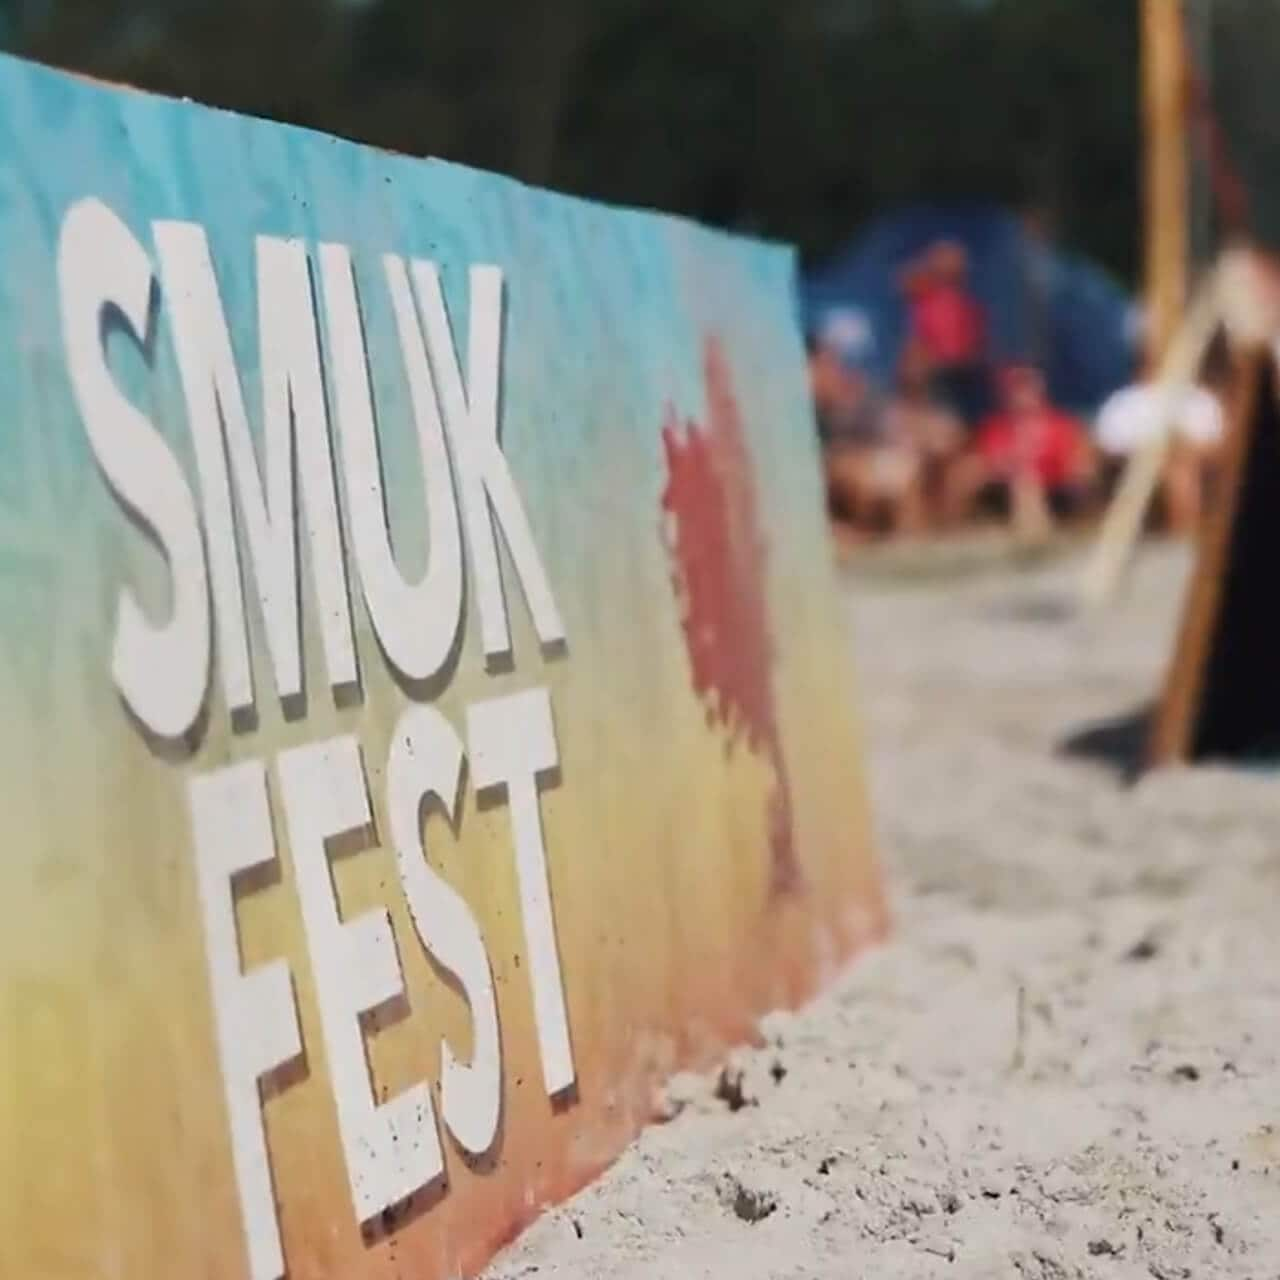 Printed sign promoting Smuk Fest event